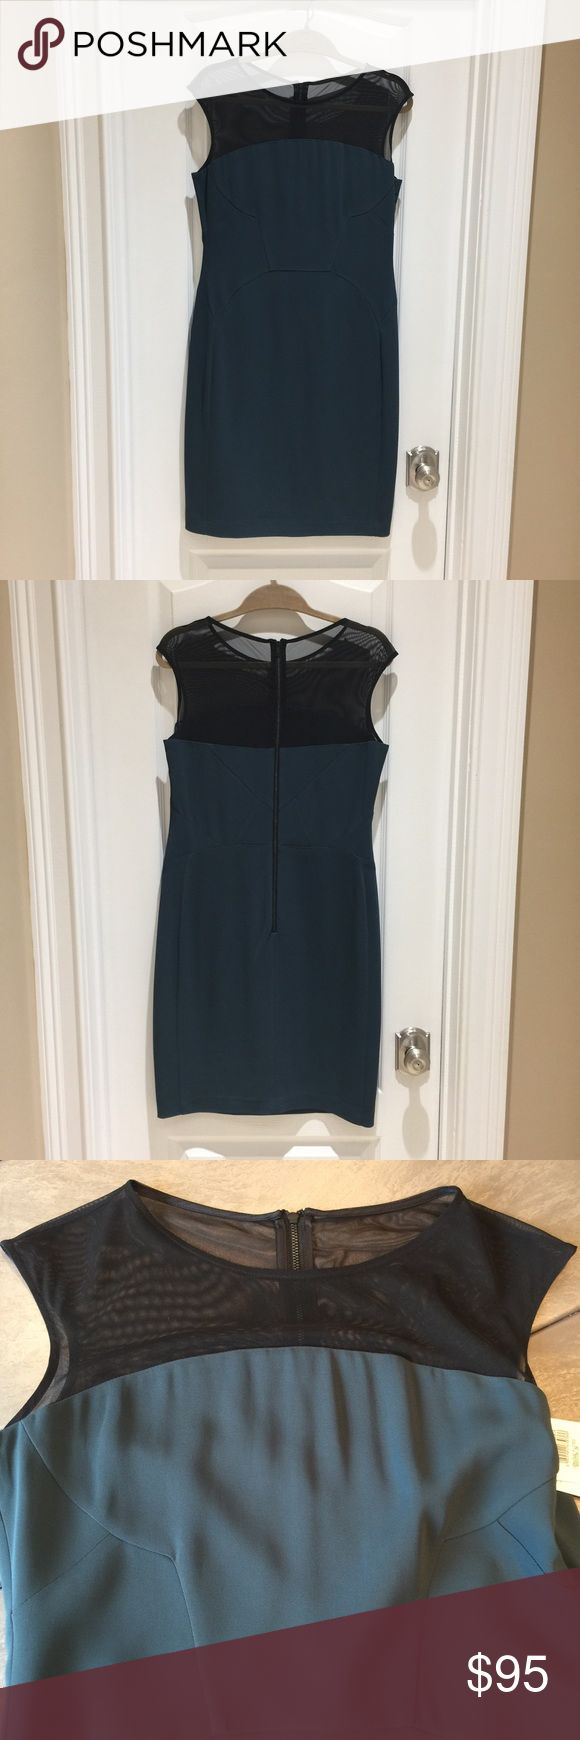 Reiss dress Danique fitted body con in deep emerald with mesh top. Never worn with tags. Reiss Dresses